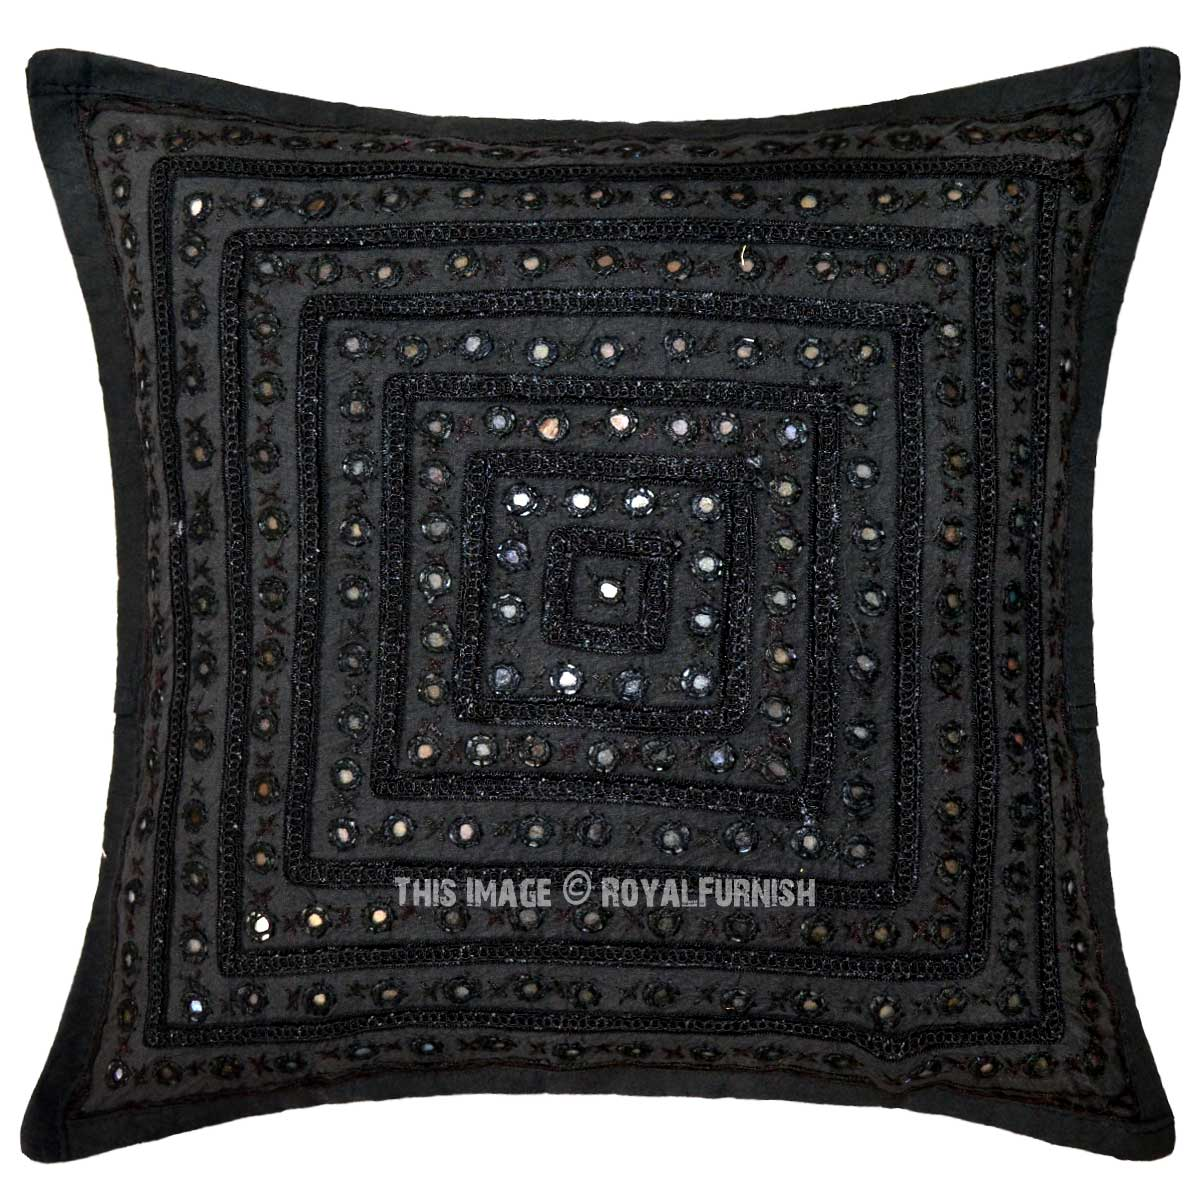 Black Decorative Unique Mirrored Embroidered Throw Pillow Cover 16X16 Inch - RoyalFurnish.com